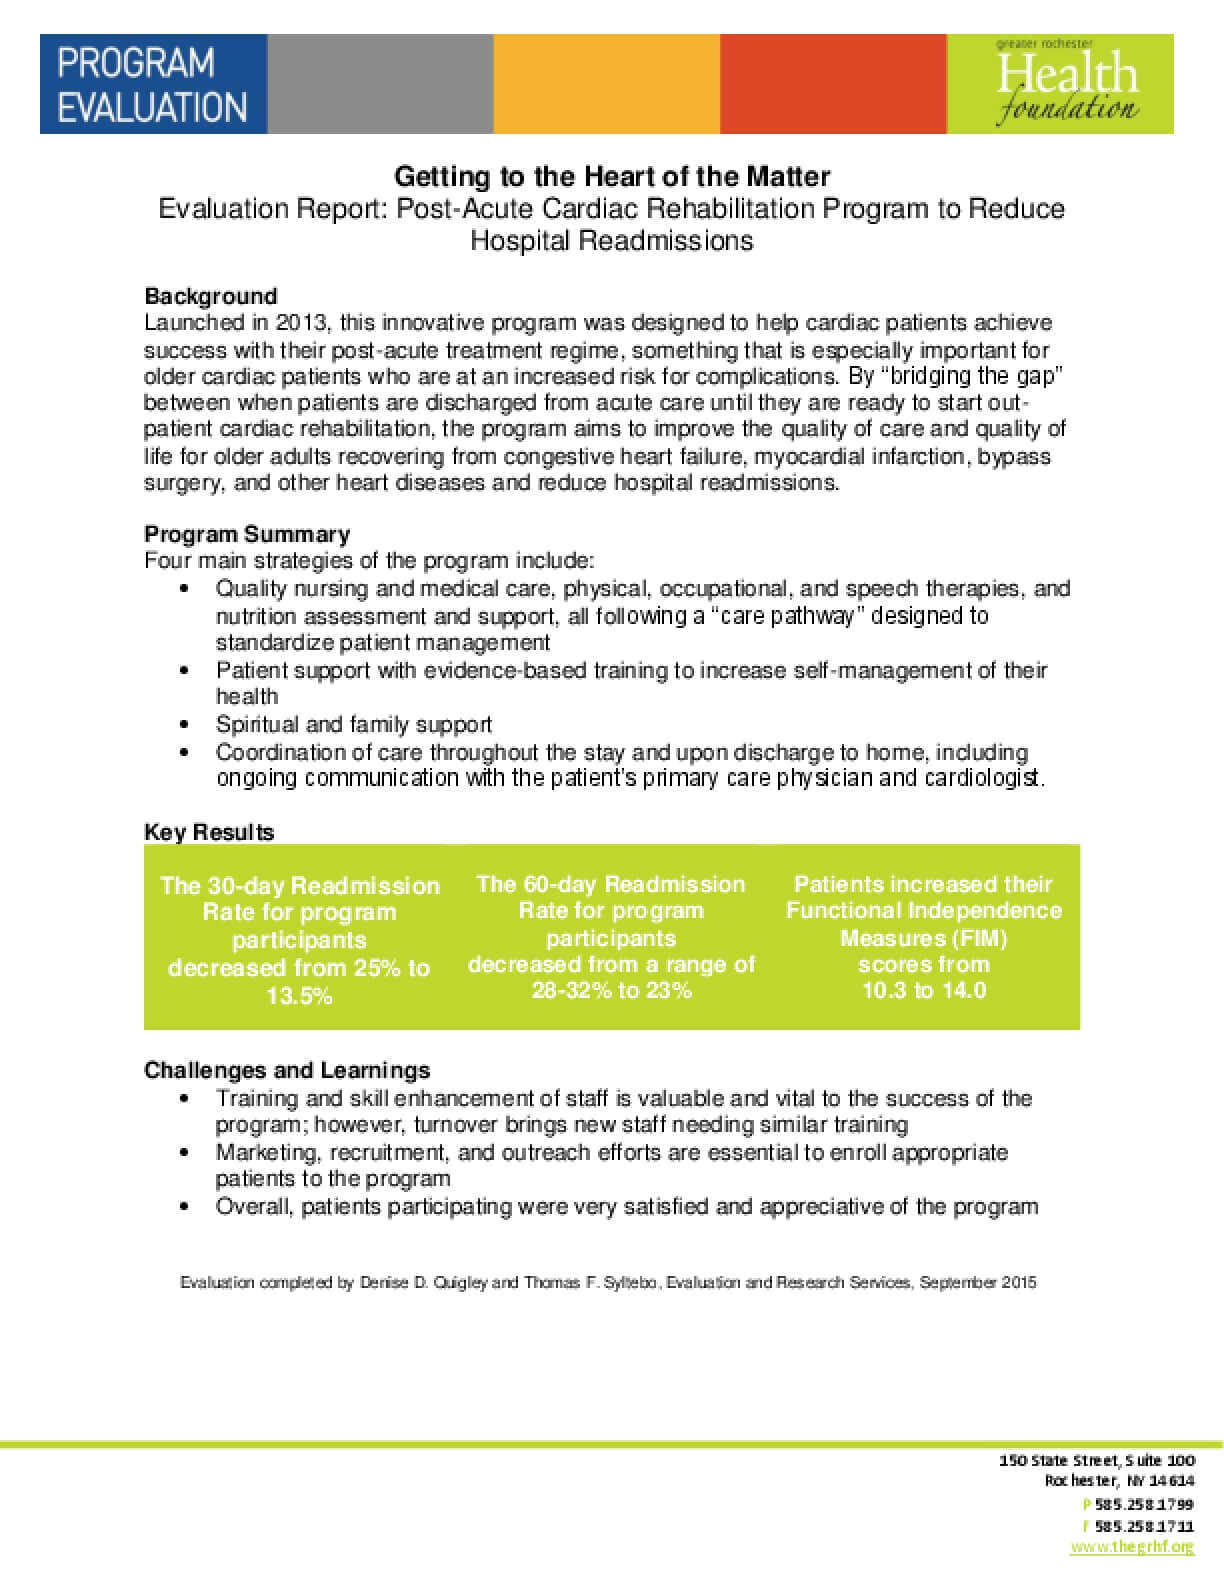 Getting to the Heart of the Matter Evaluation Report: Post-Acute Cardiac Rehabilitation Program to Reduce Hospital Readmissions